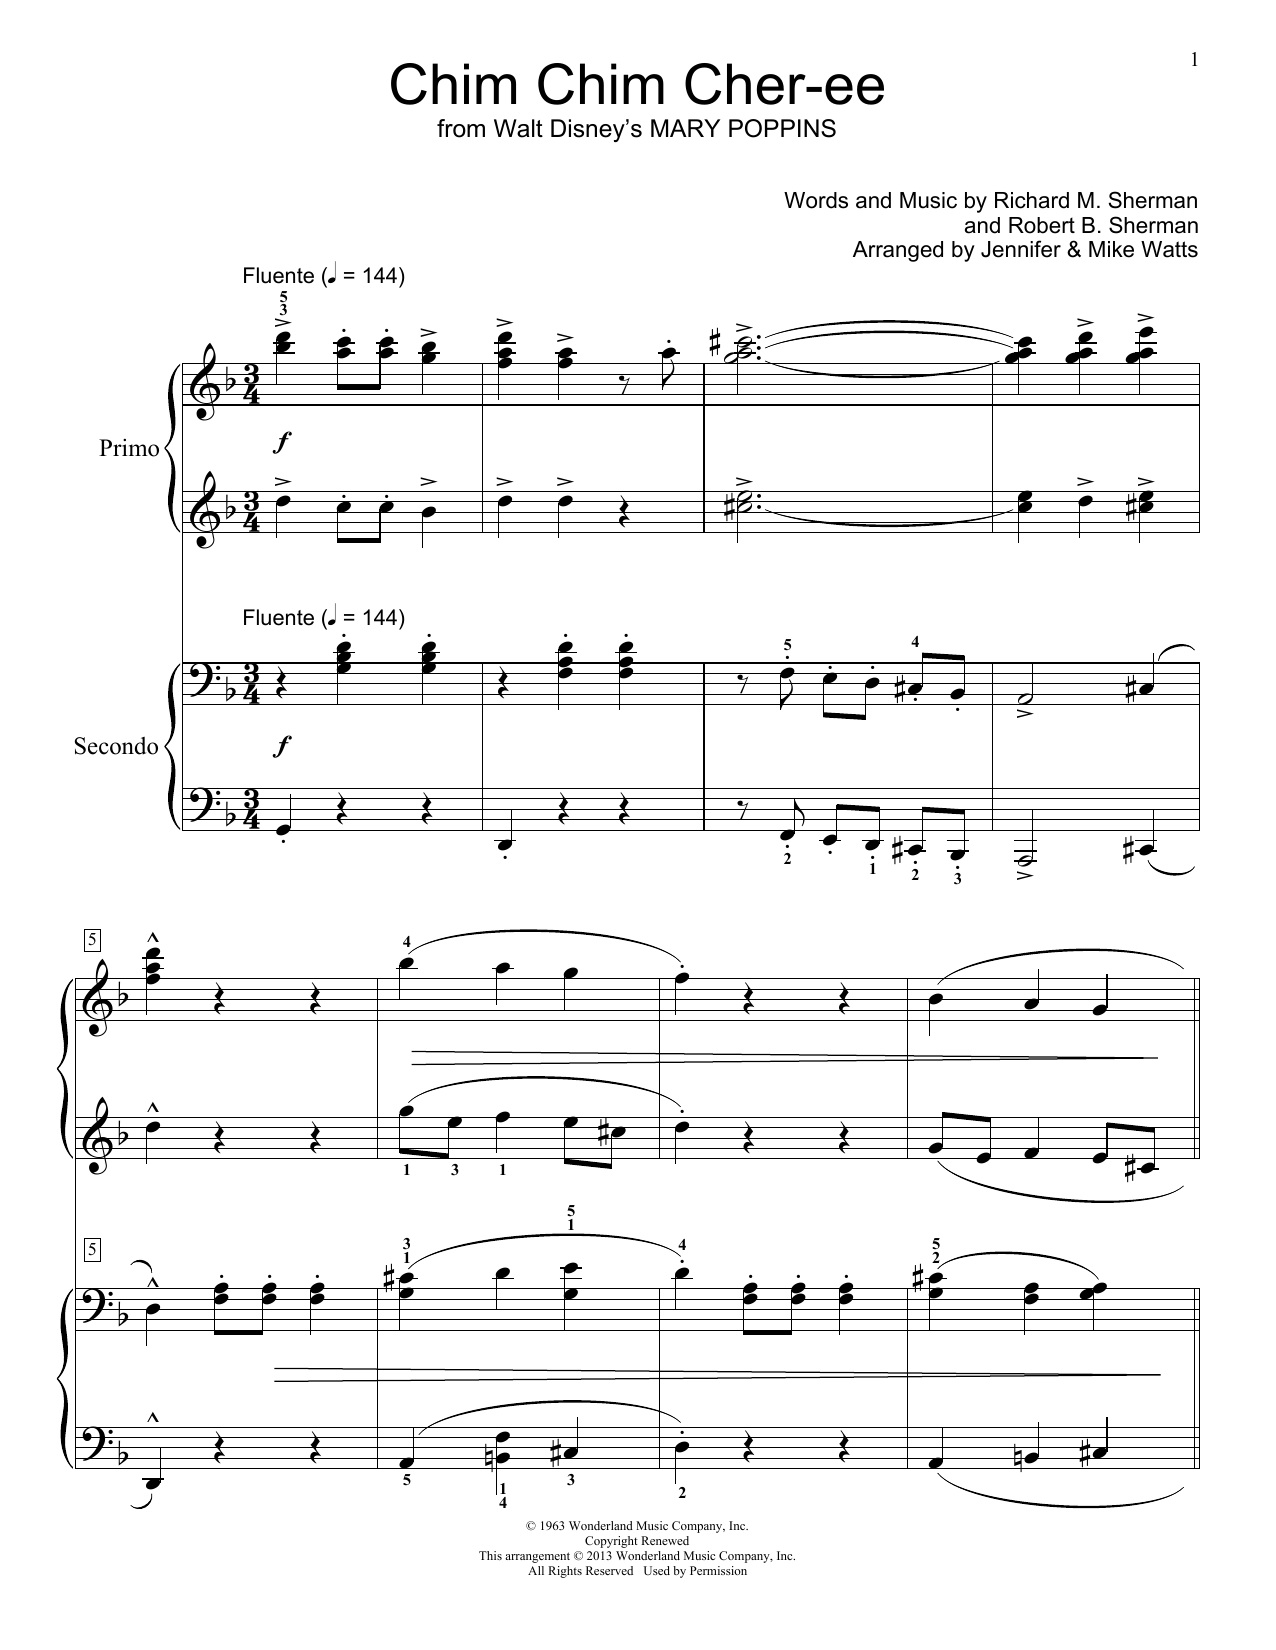 Sheet Music Digital By Merriam Music.